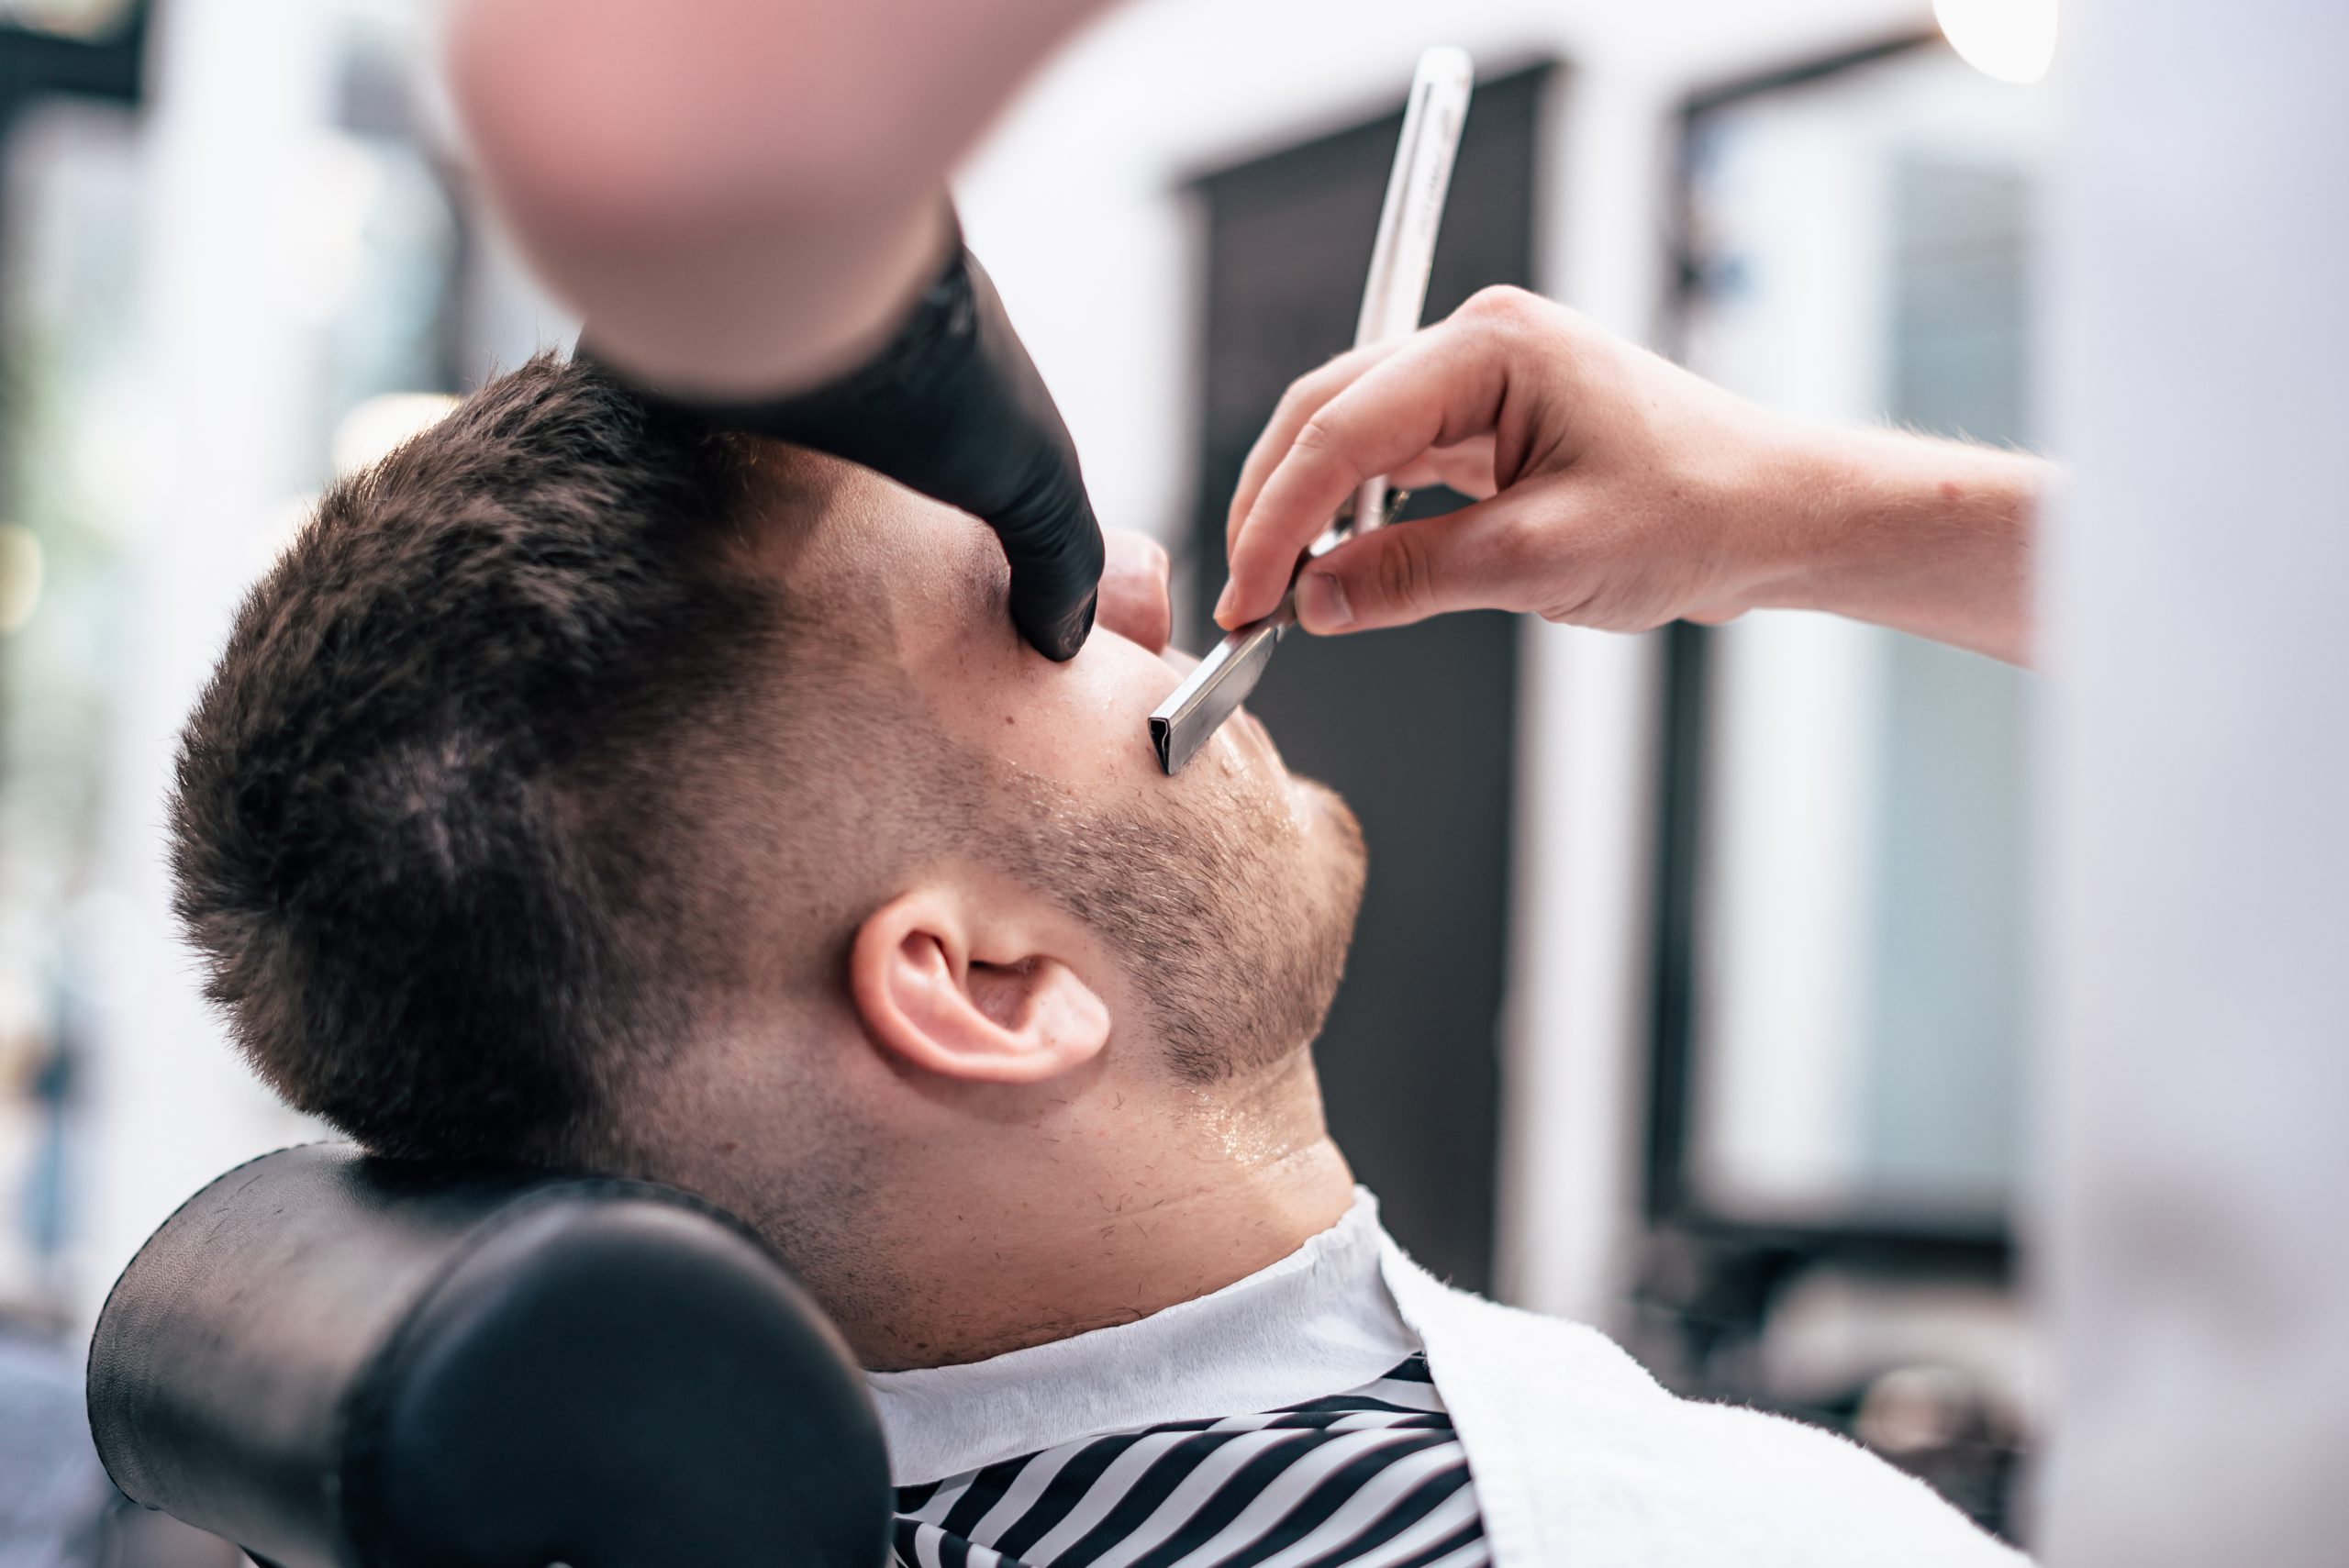 Barber makes a haircut to the client.